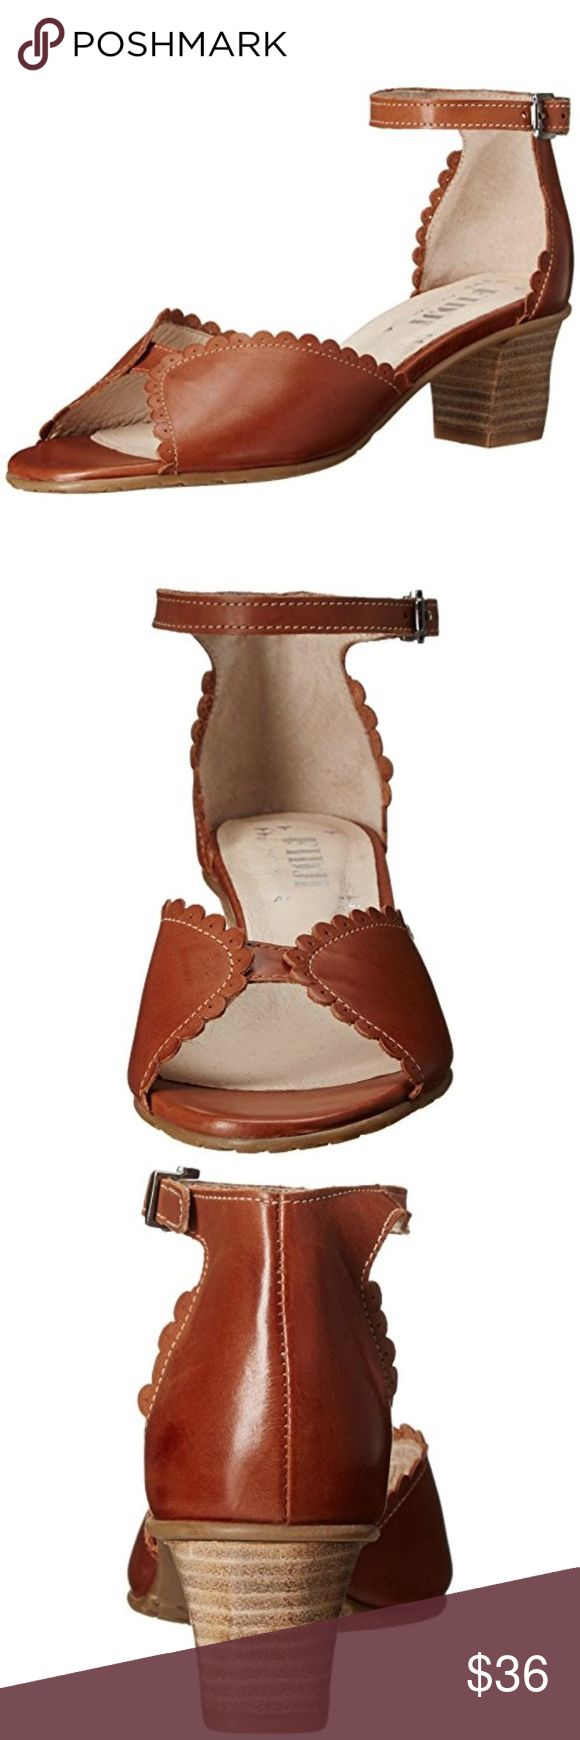 Fidji $173* Brown Leather Ankle Strap Sandals NEW WITH BOX.  Fidji Brown Leather Ankle Strap Dress Sandals SIZE: 39.5 Fidji Shoes Sandals